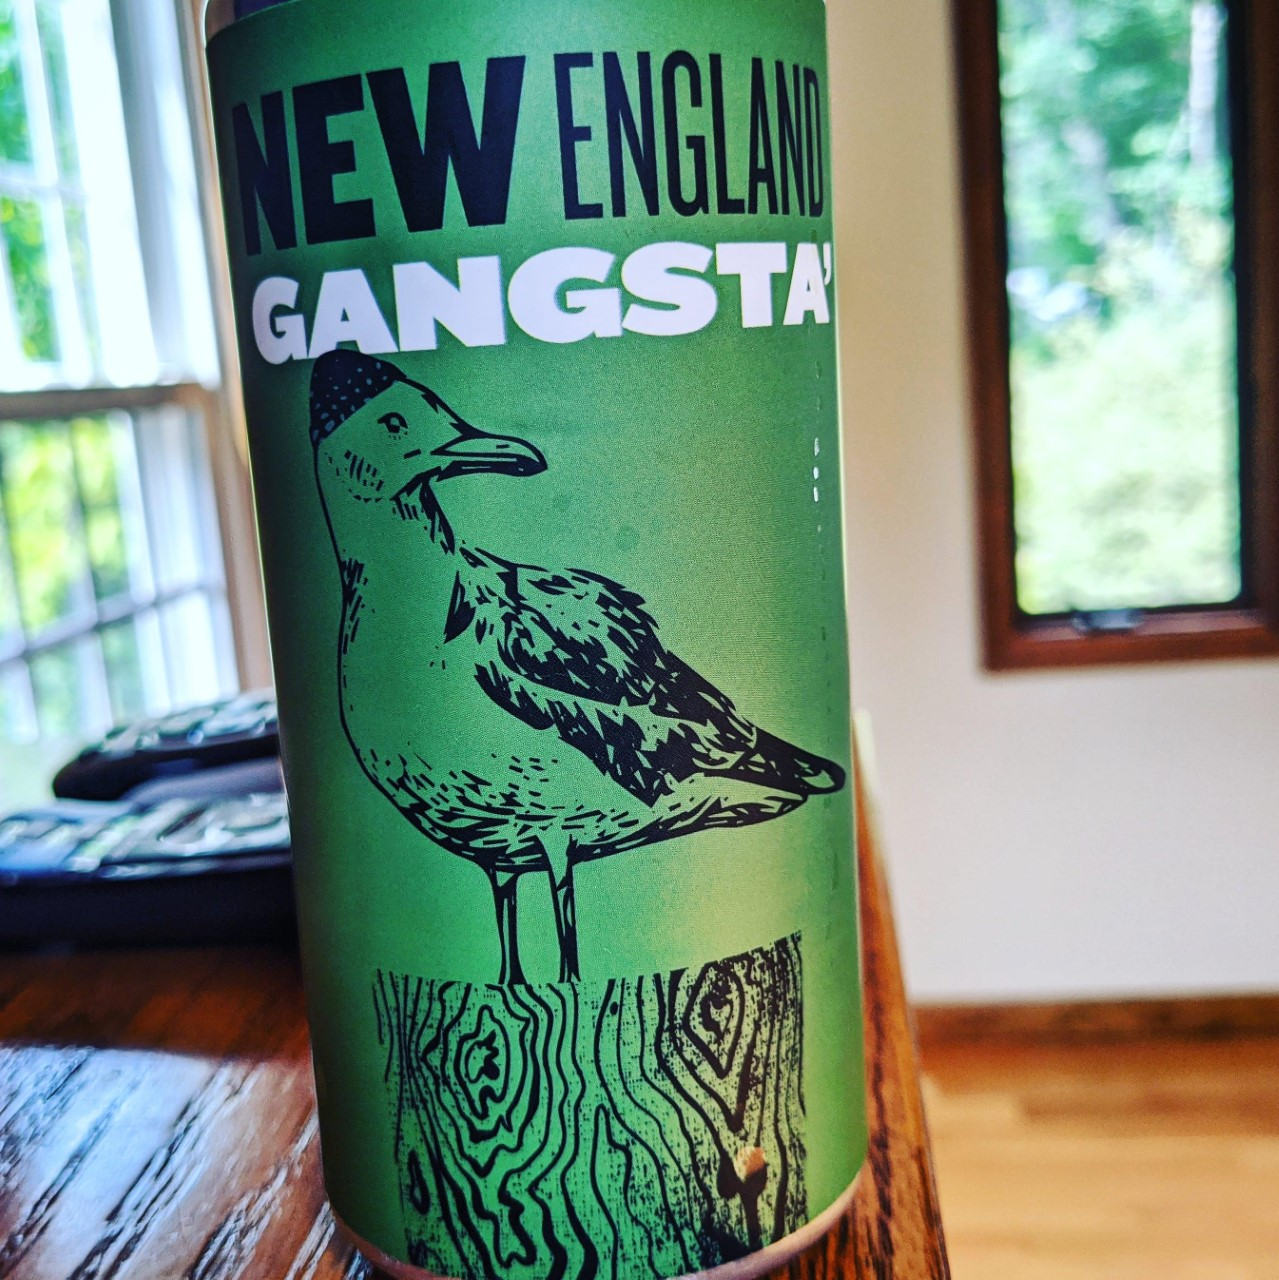 New England Gangsta. [Обзор пива].